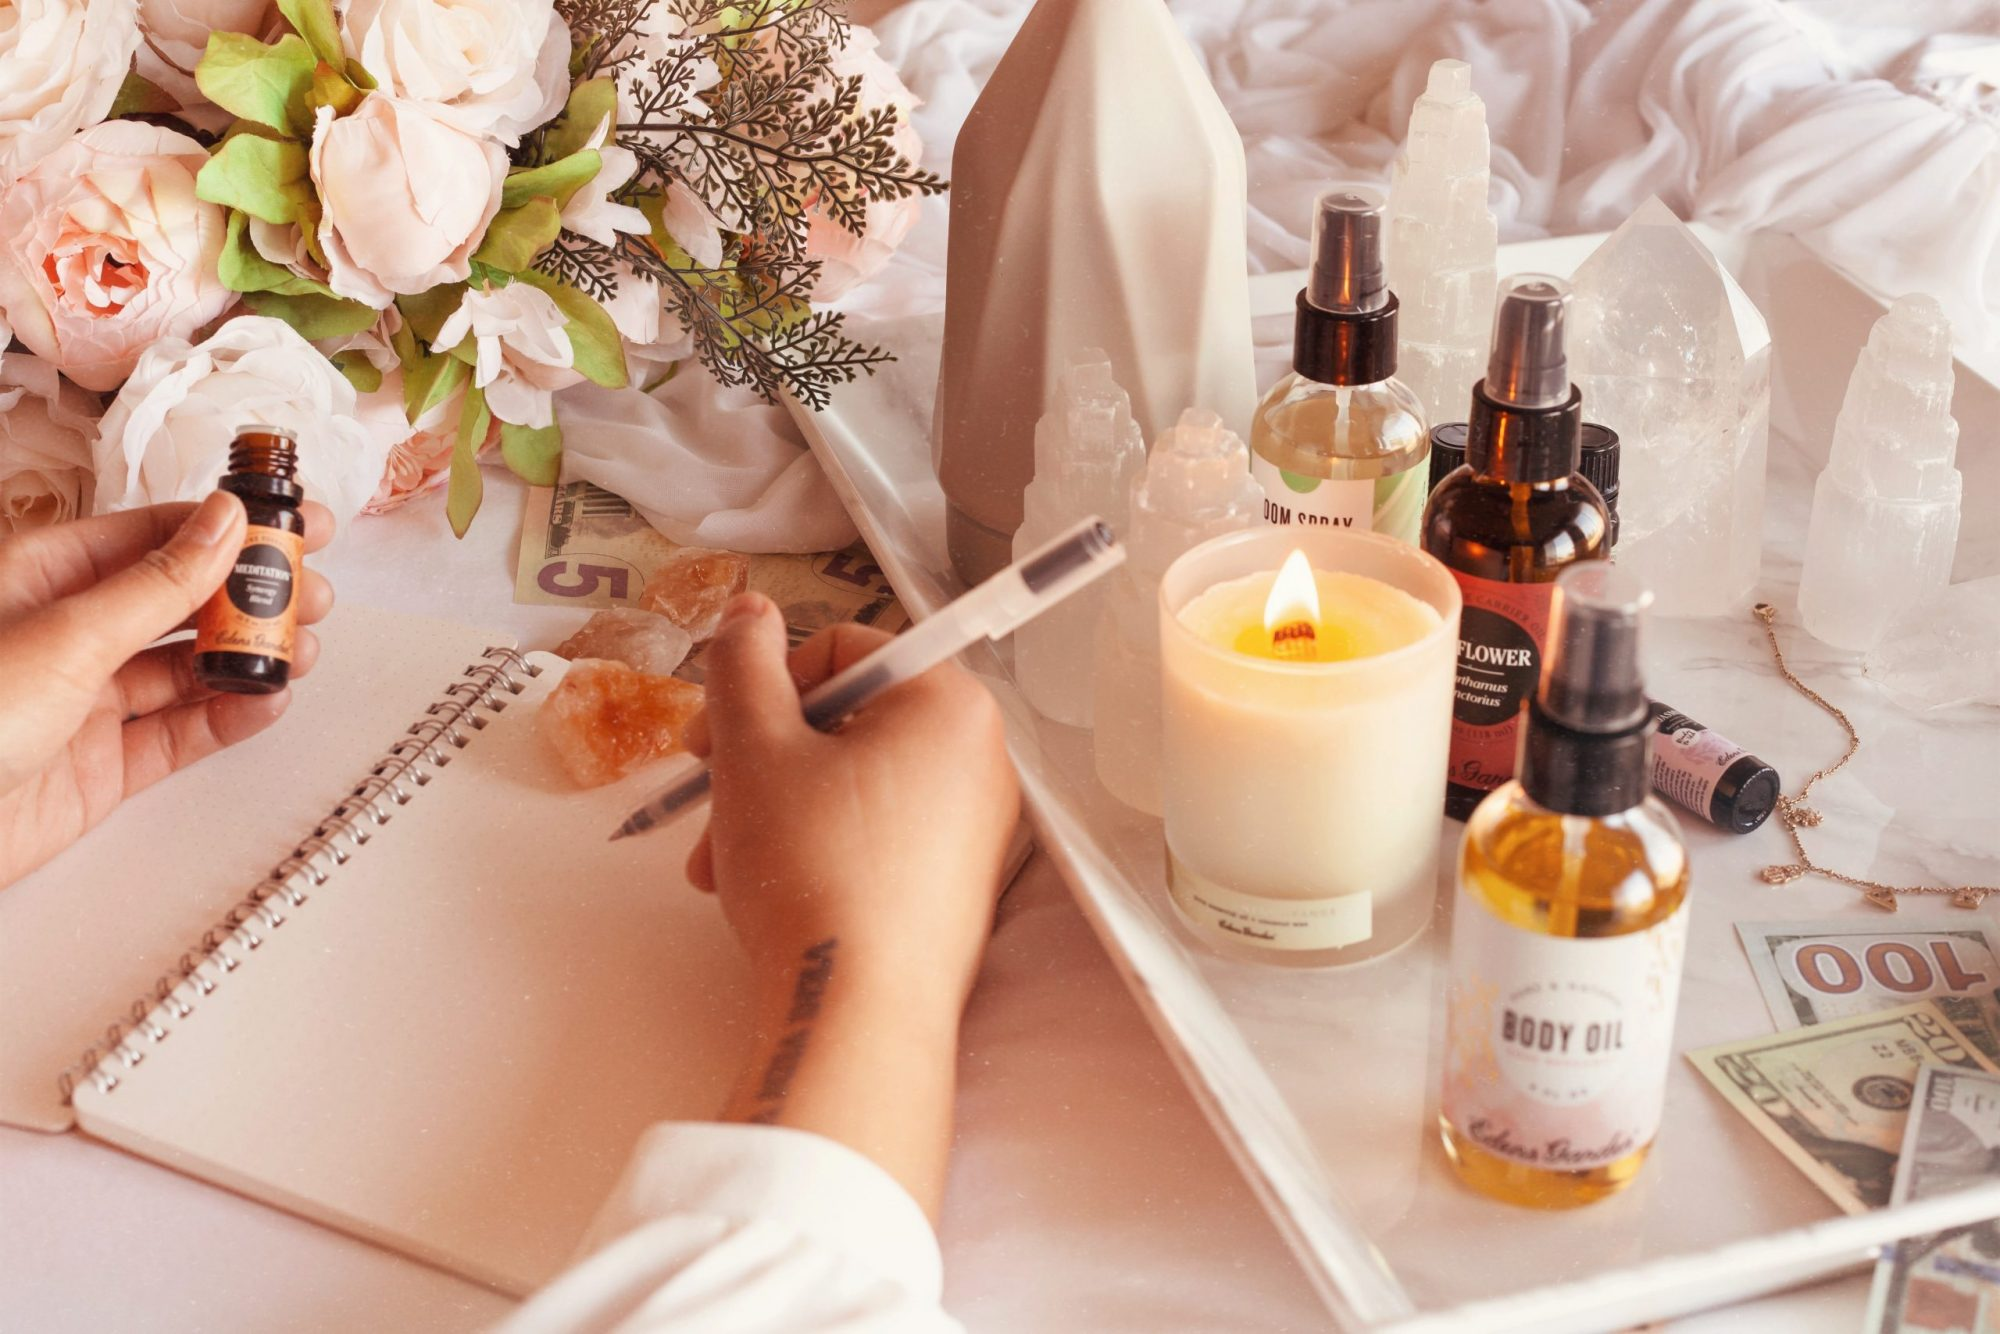 Image of essential oils, oil diffuser, candle, and writing in a journal